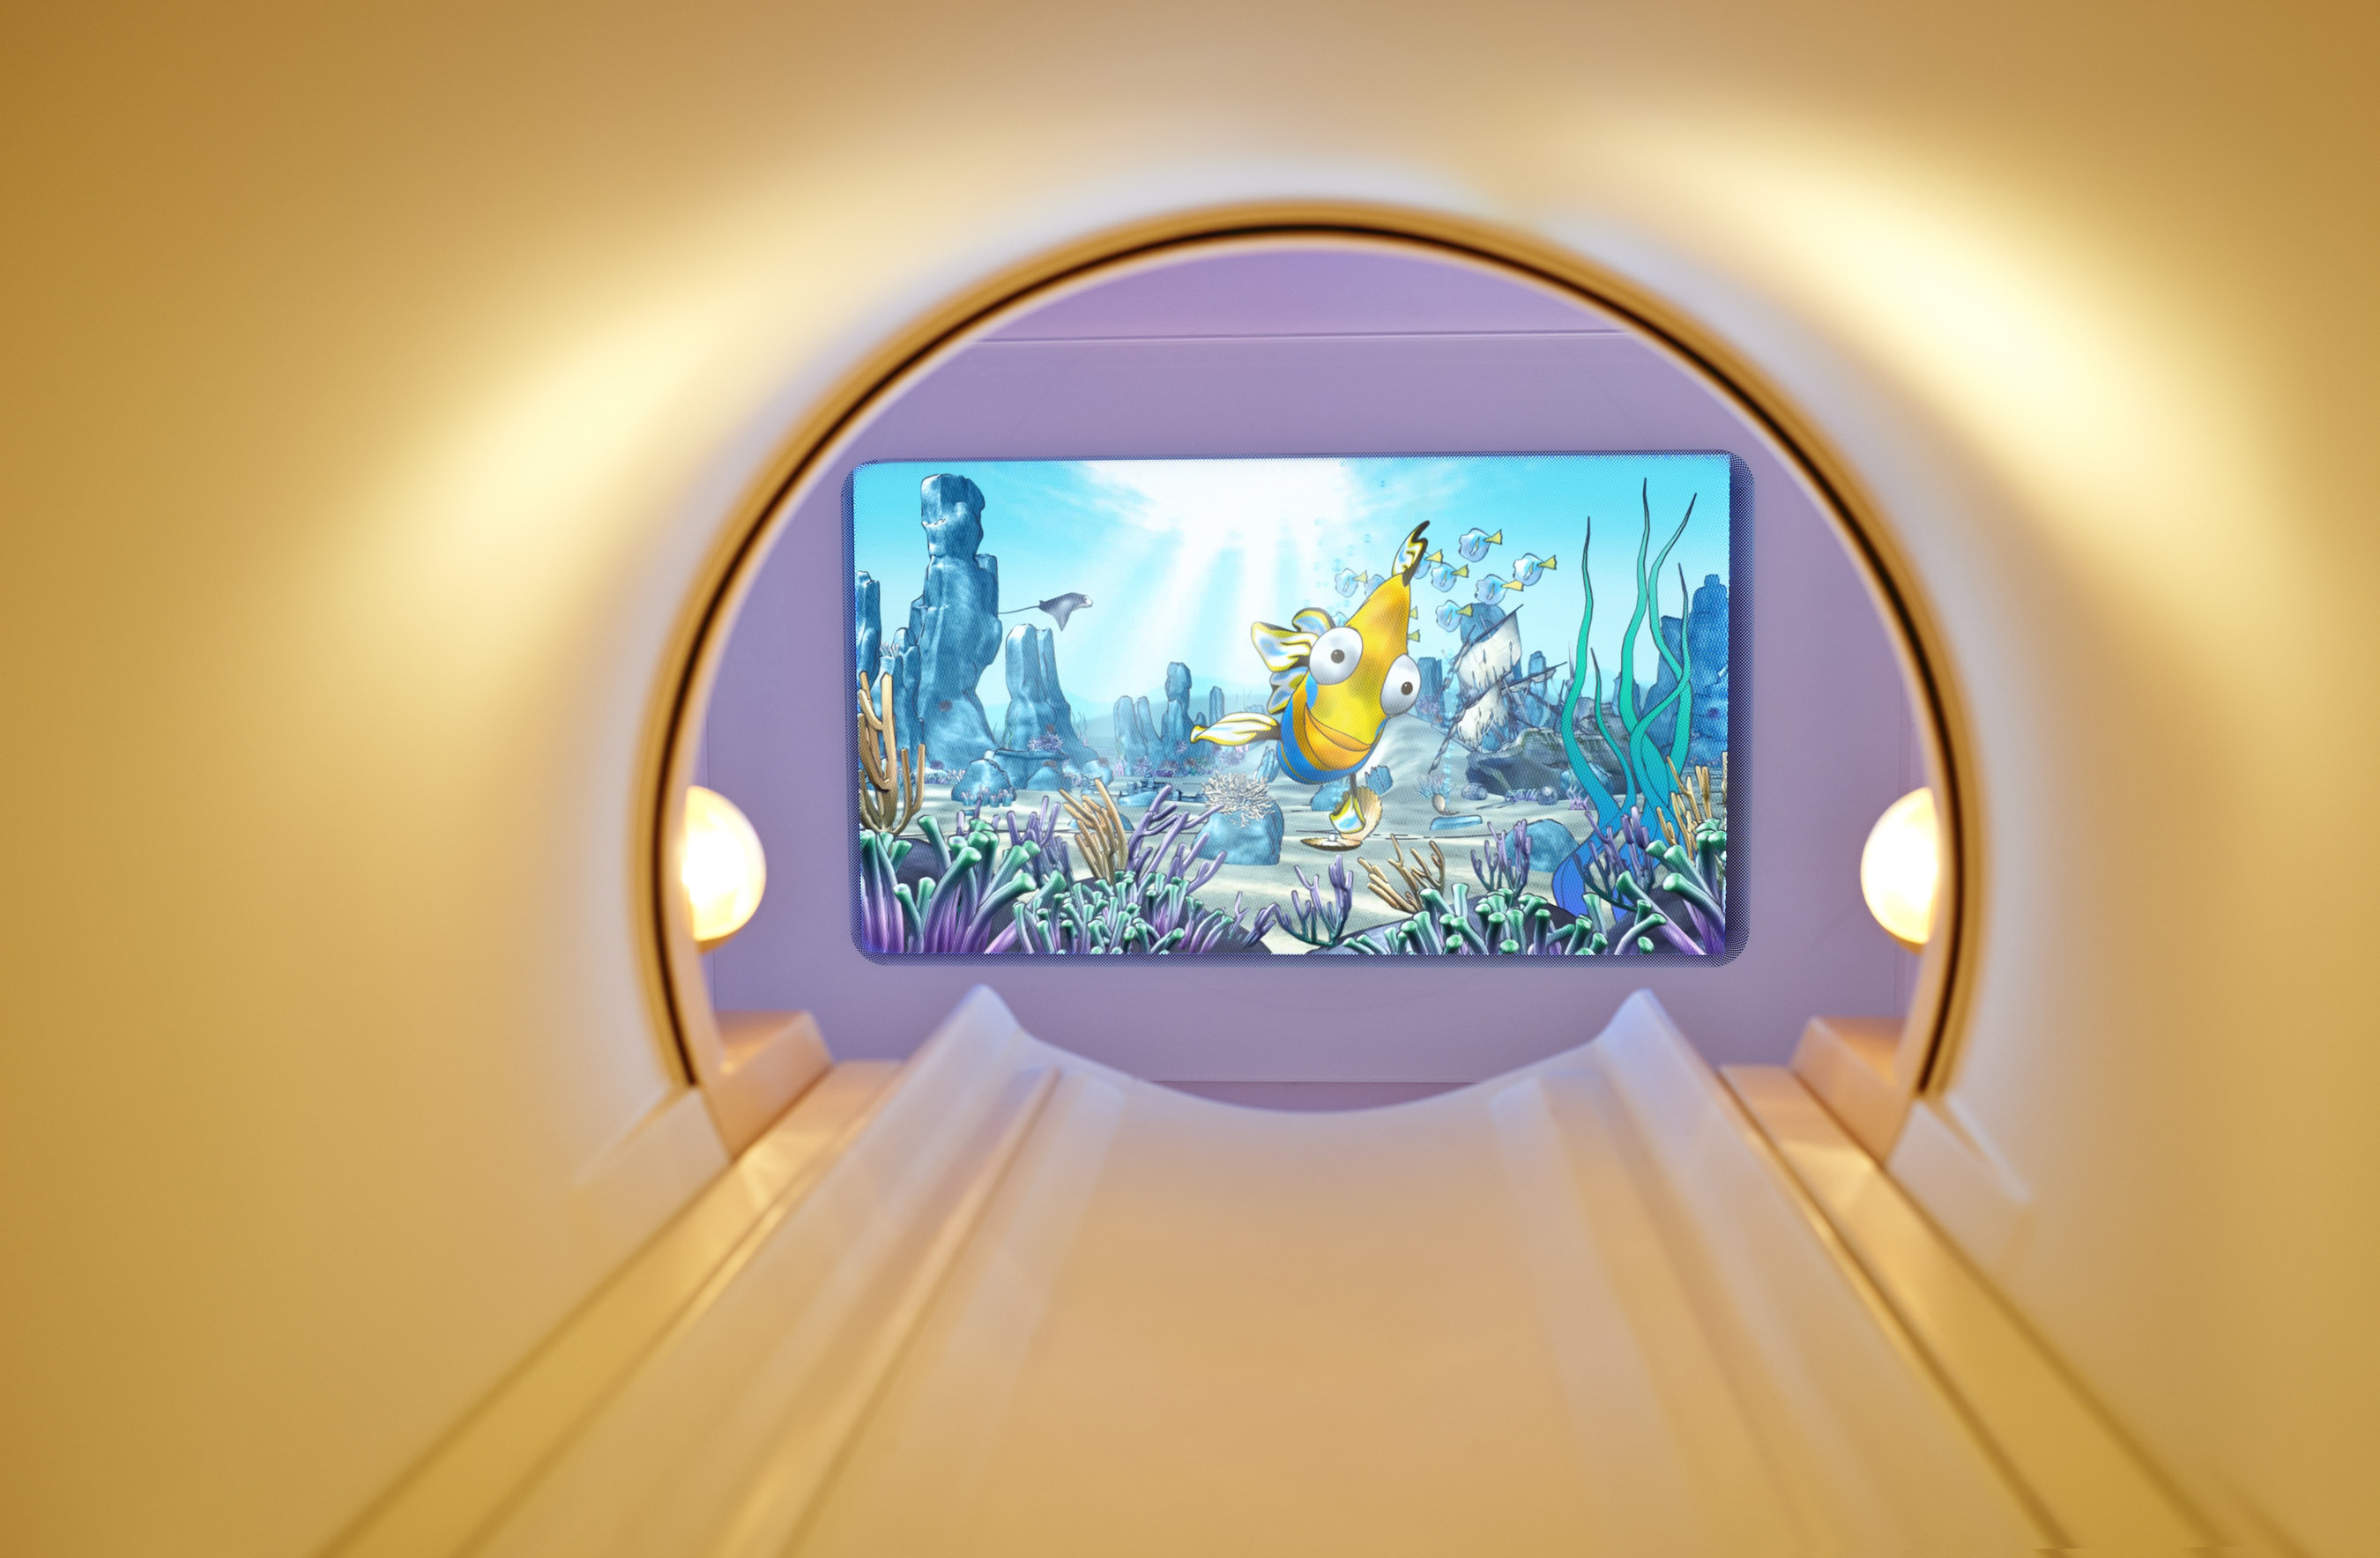 Engaging visuals are displayed on the back wall and can be seen via a mirror on the head coil, while patients ...